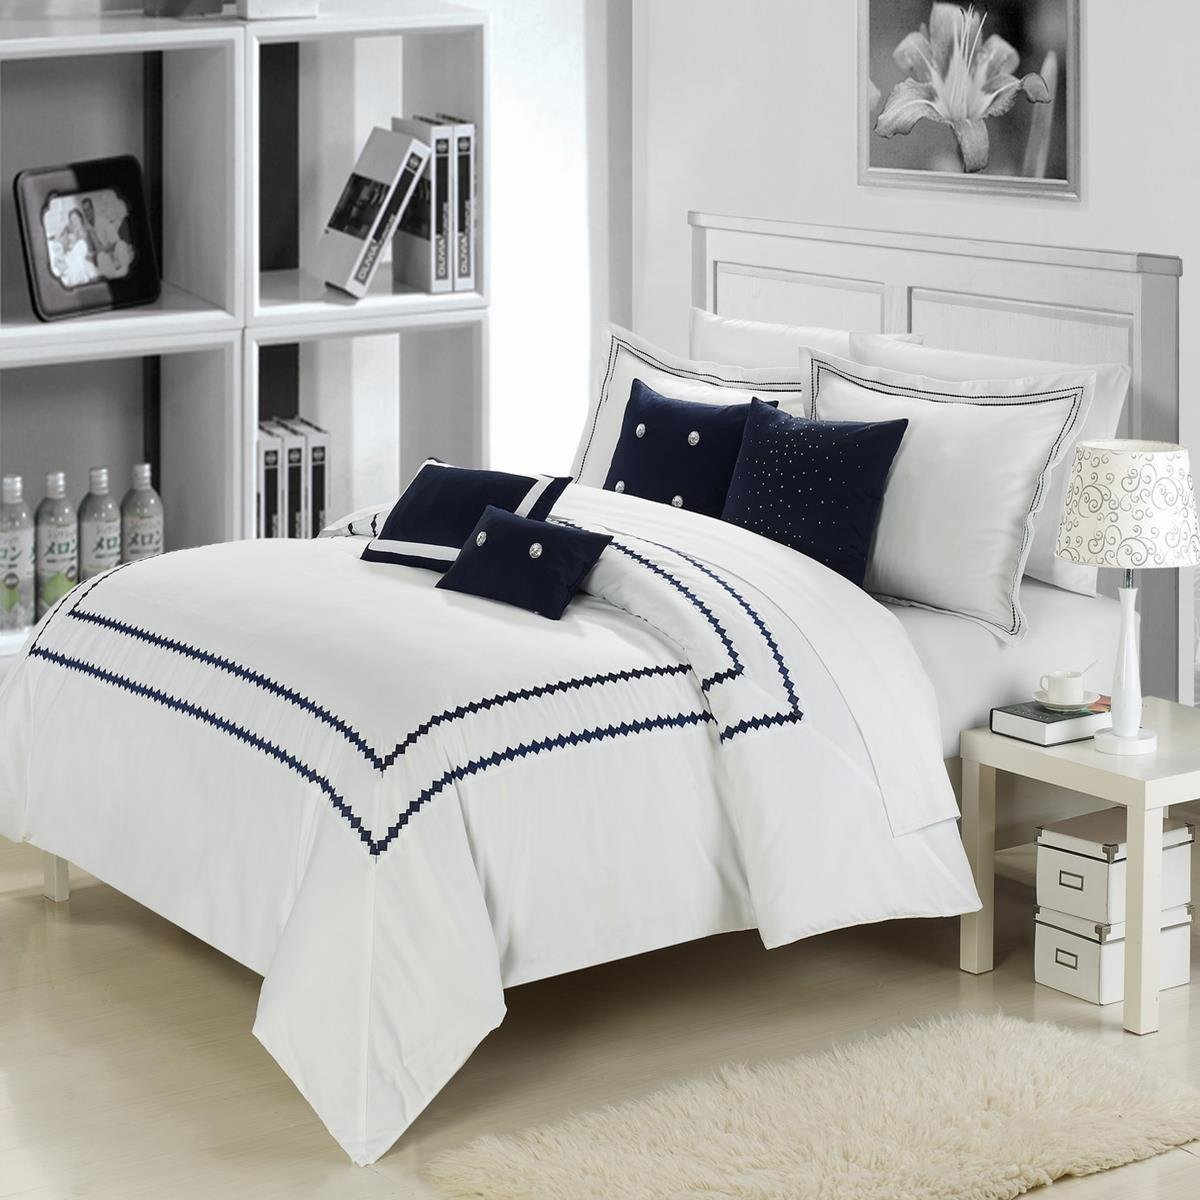 White And Blue Duvet, Wholesale Various High Quality White And Blue Duvet Products from Global White And Blue Duvet Suppliers and White And Blue Duvet Factory,Importer,Exporter at distrib-wq9rfuqq.tk